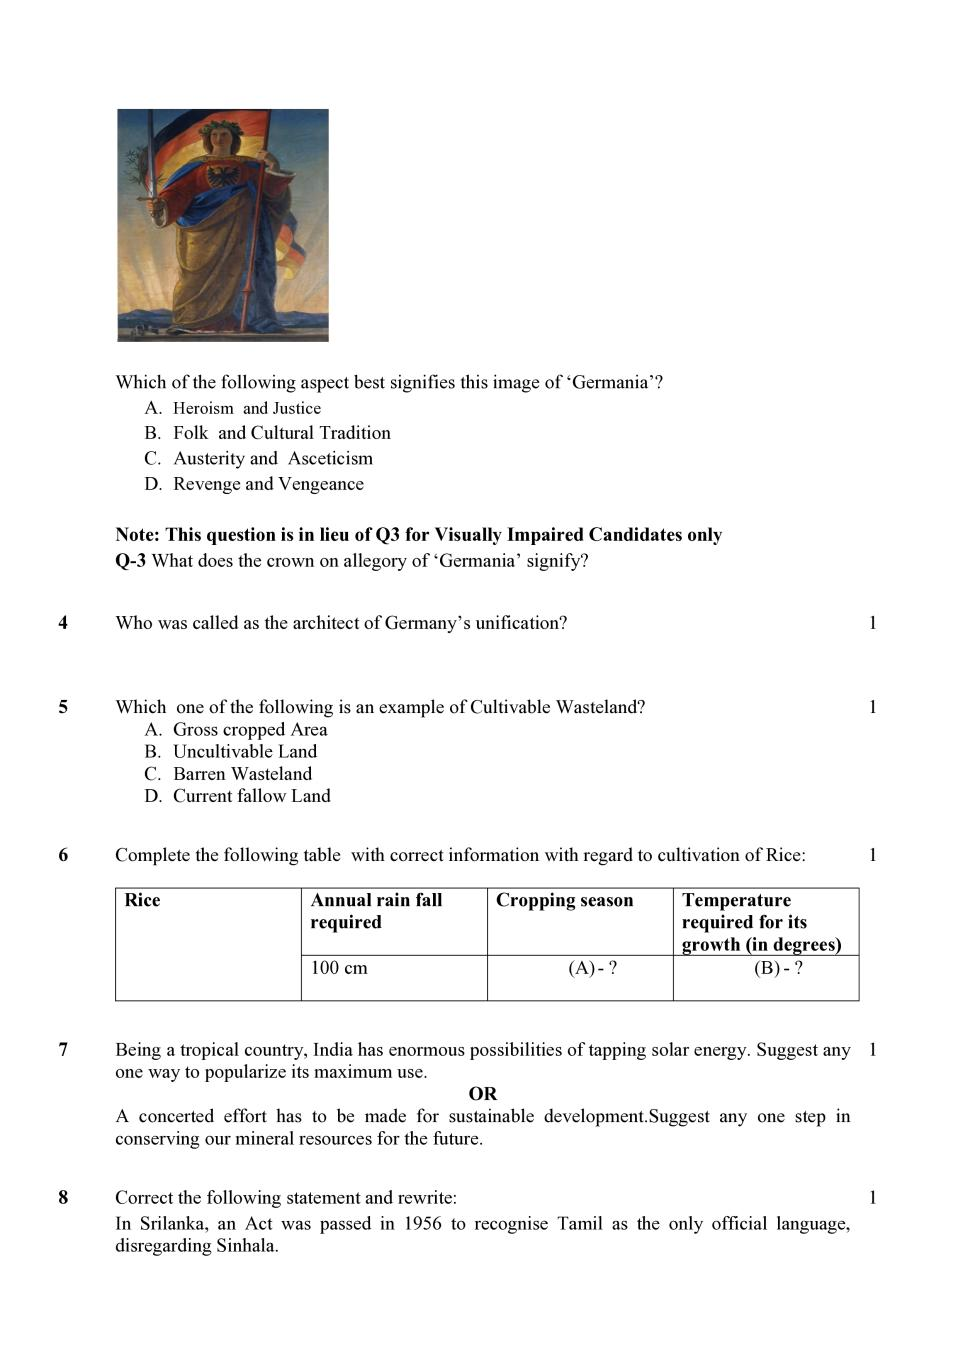 CBSE Class 10 Social Science Sample Paper 2020 published at cbseacademic.nic.in